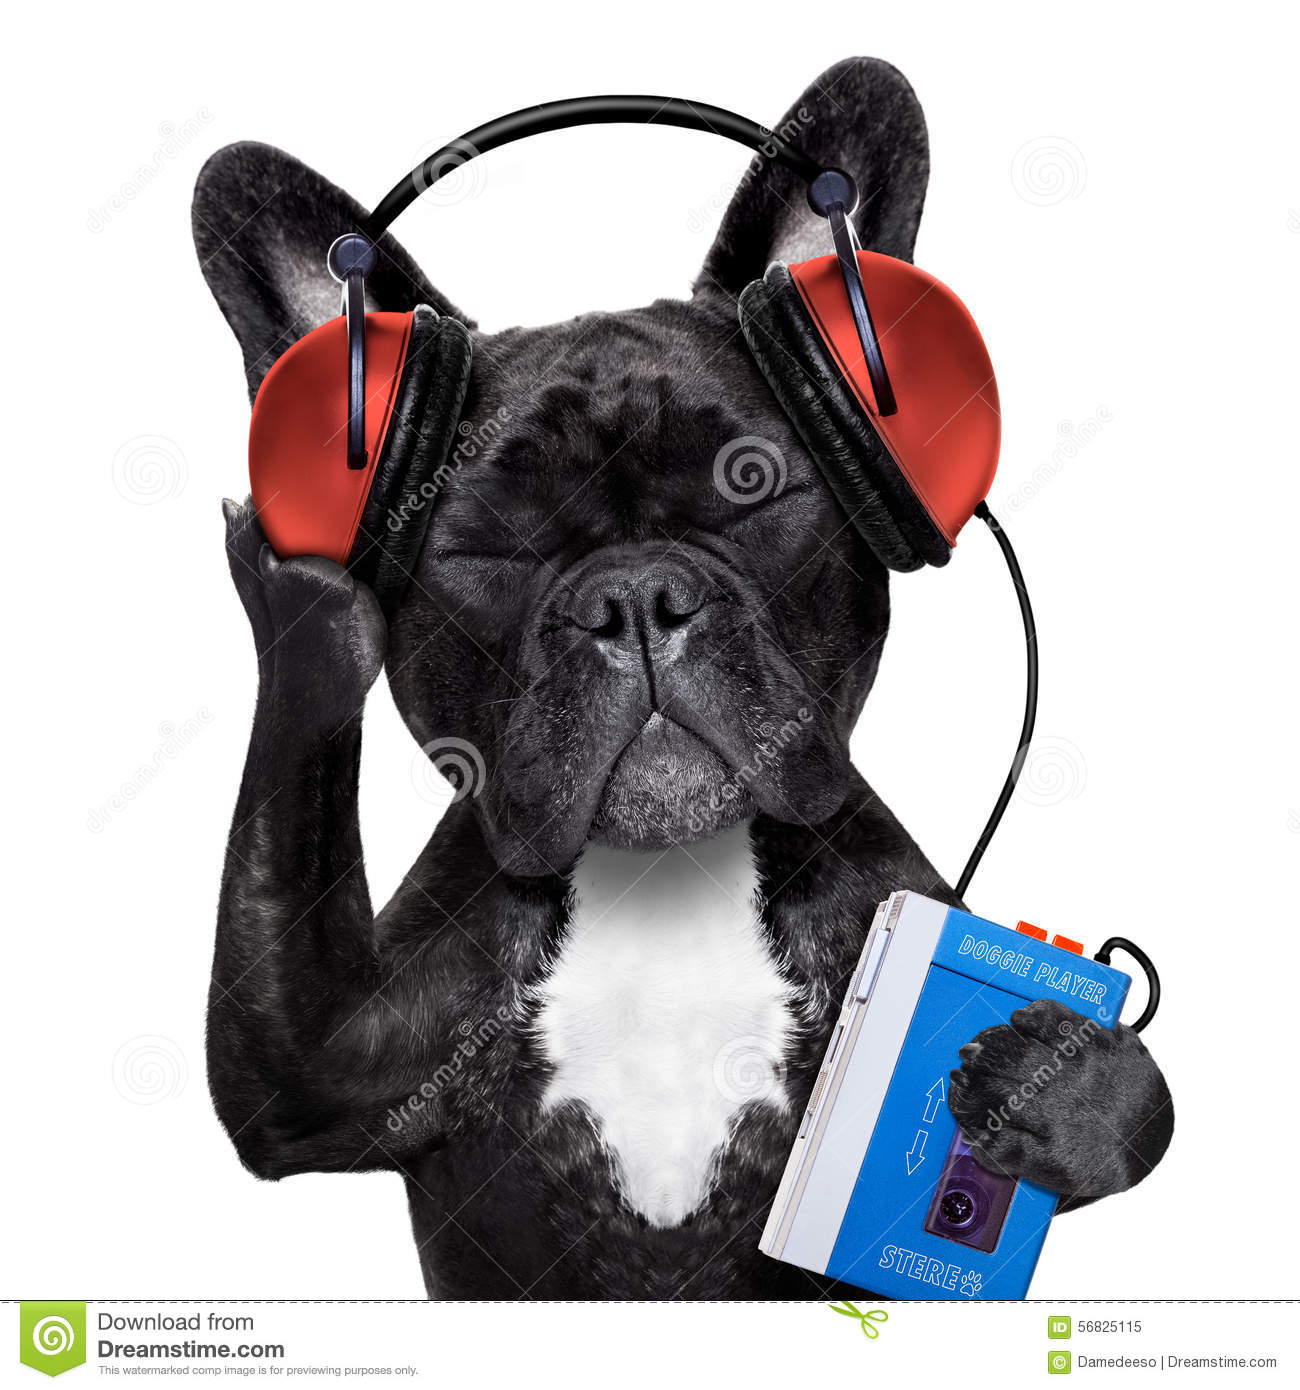 29194 likewise 26317 as well 210091 furthermore Stock Photo Dog Listening Music French Bulldog To Oldies Headphones Earphones Retro Cassette Tape Recorder Relaxing Eyes Image56825115 in addition Old Fashioned Retro Radios. on old radio portable